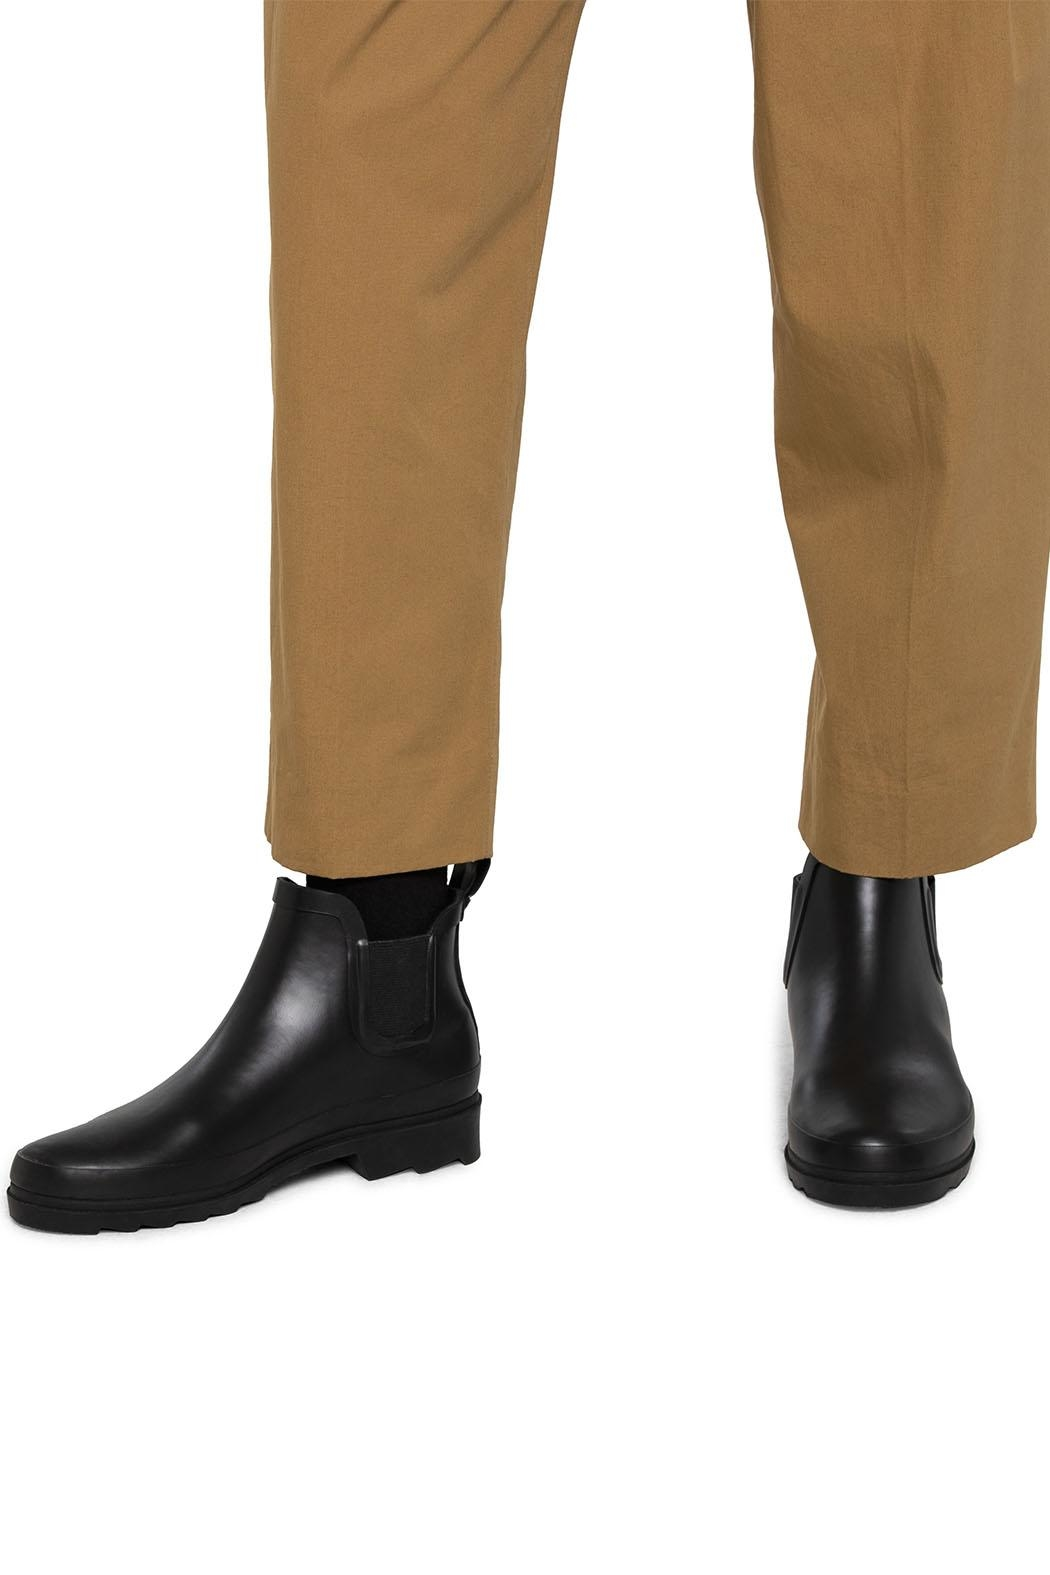 Matt & Nat Lane Rain Boots - Back Cropped Image